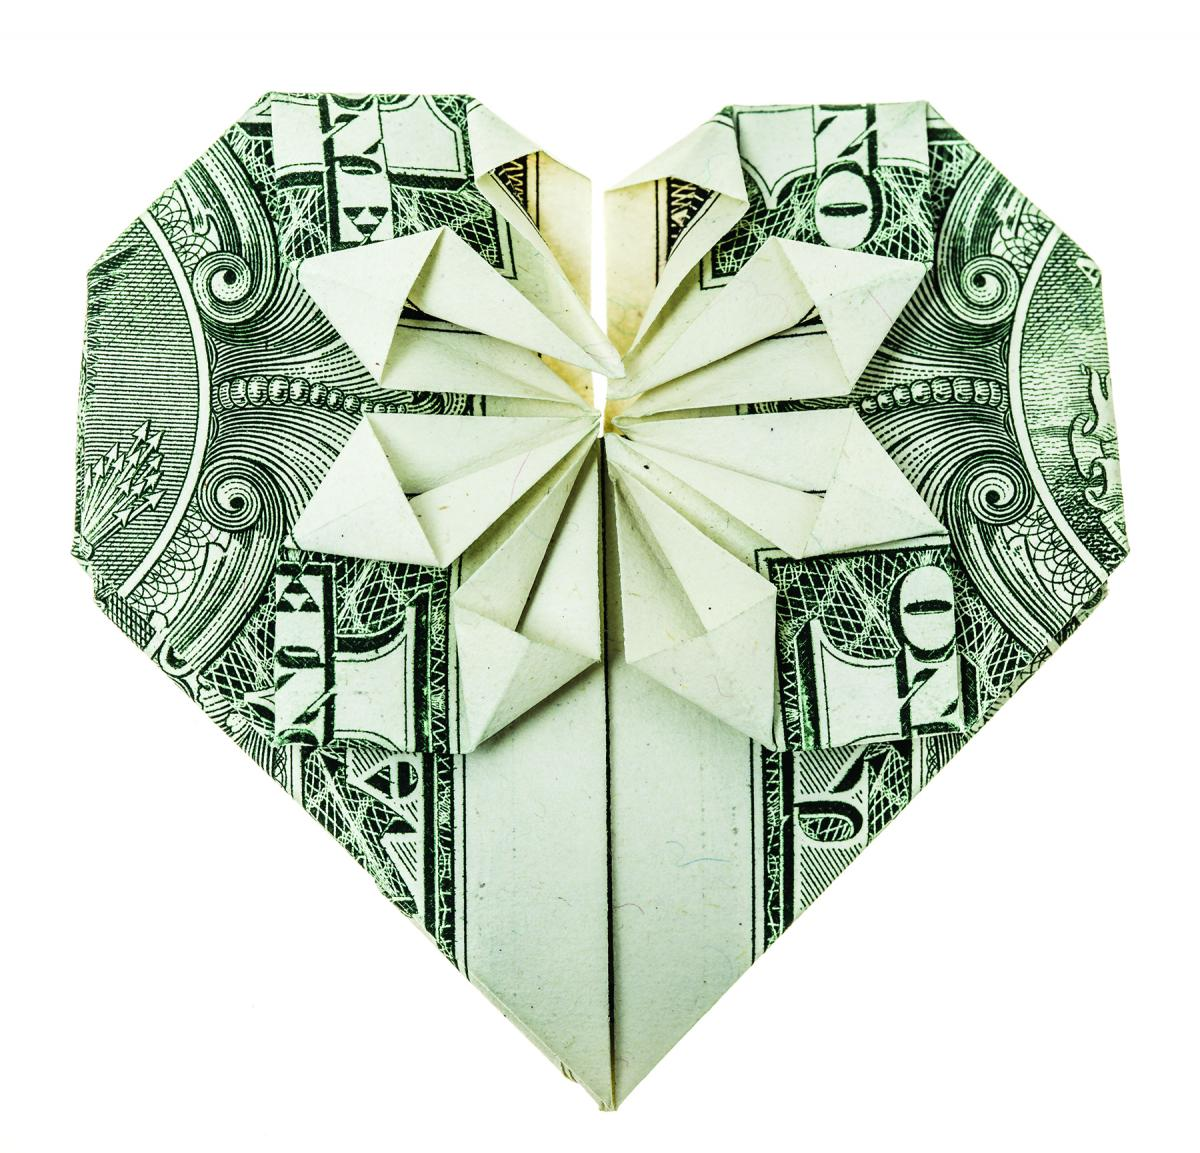 Origami samples heart origami dollar bill printable origami origami samples heart origami dollar bill 43 reasons to praise the lord visitor magazine jeuxipadfo Images